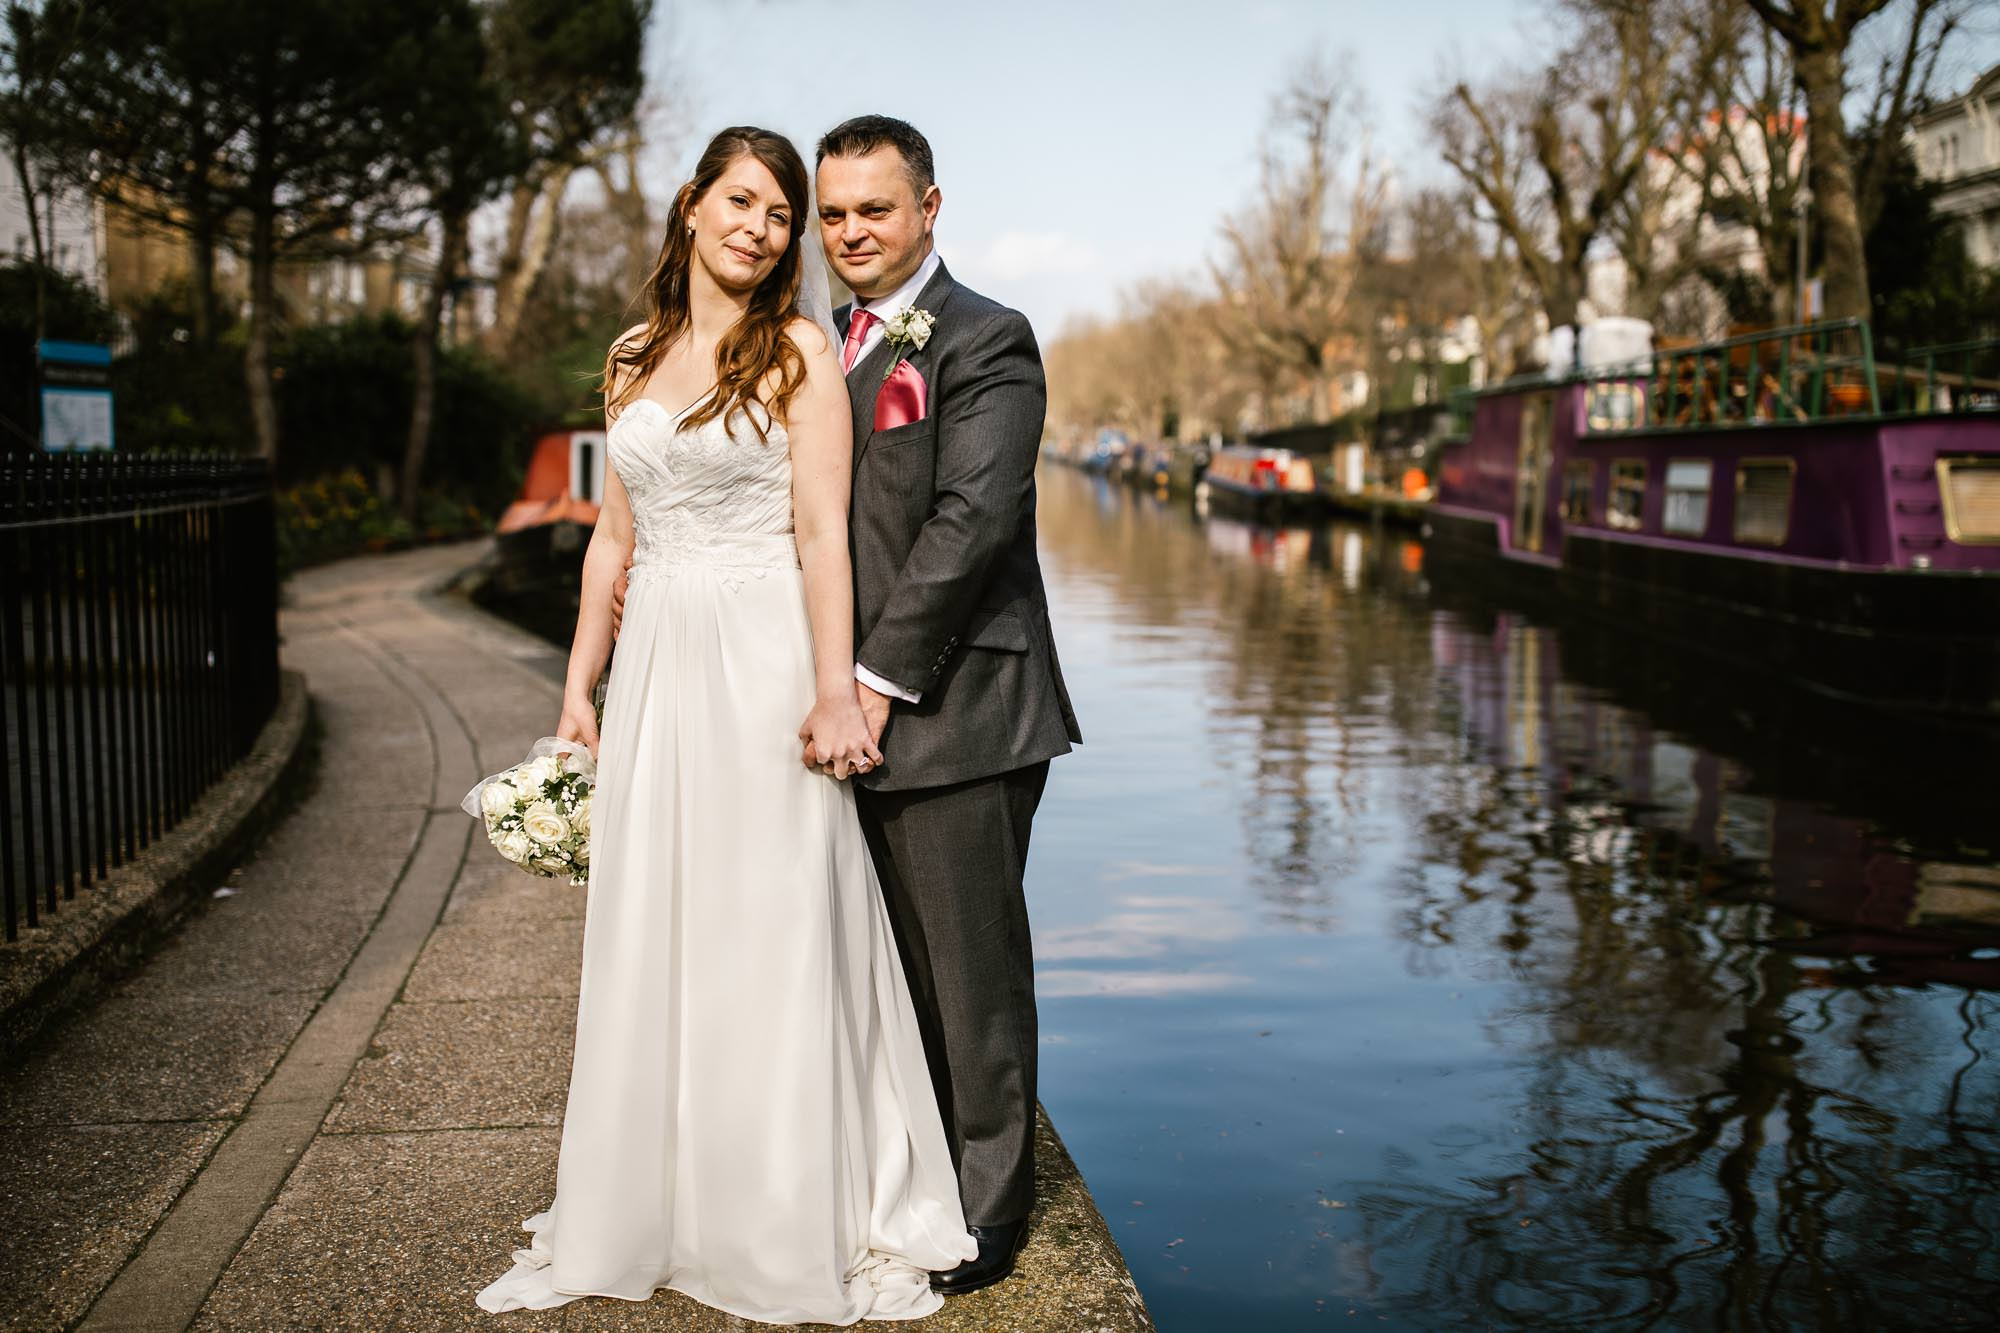 The Amadeus Wedding Photography - David and Lizzie 33